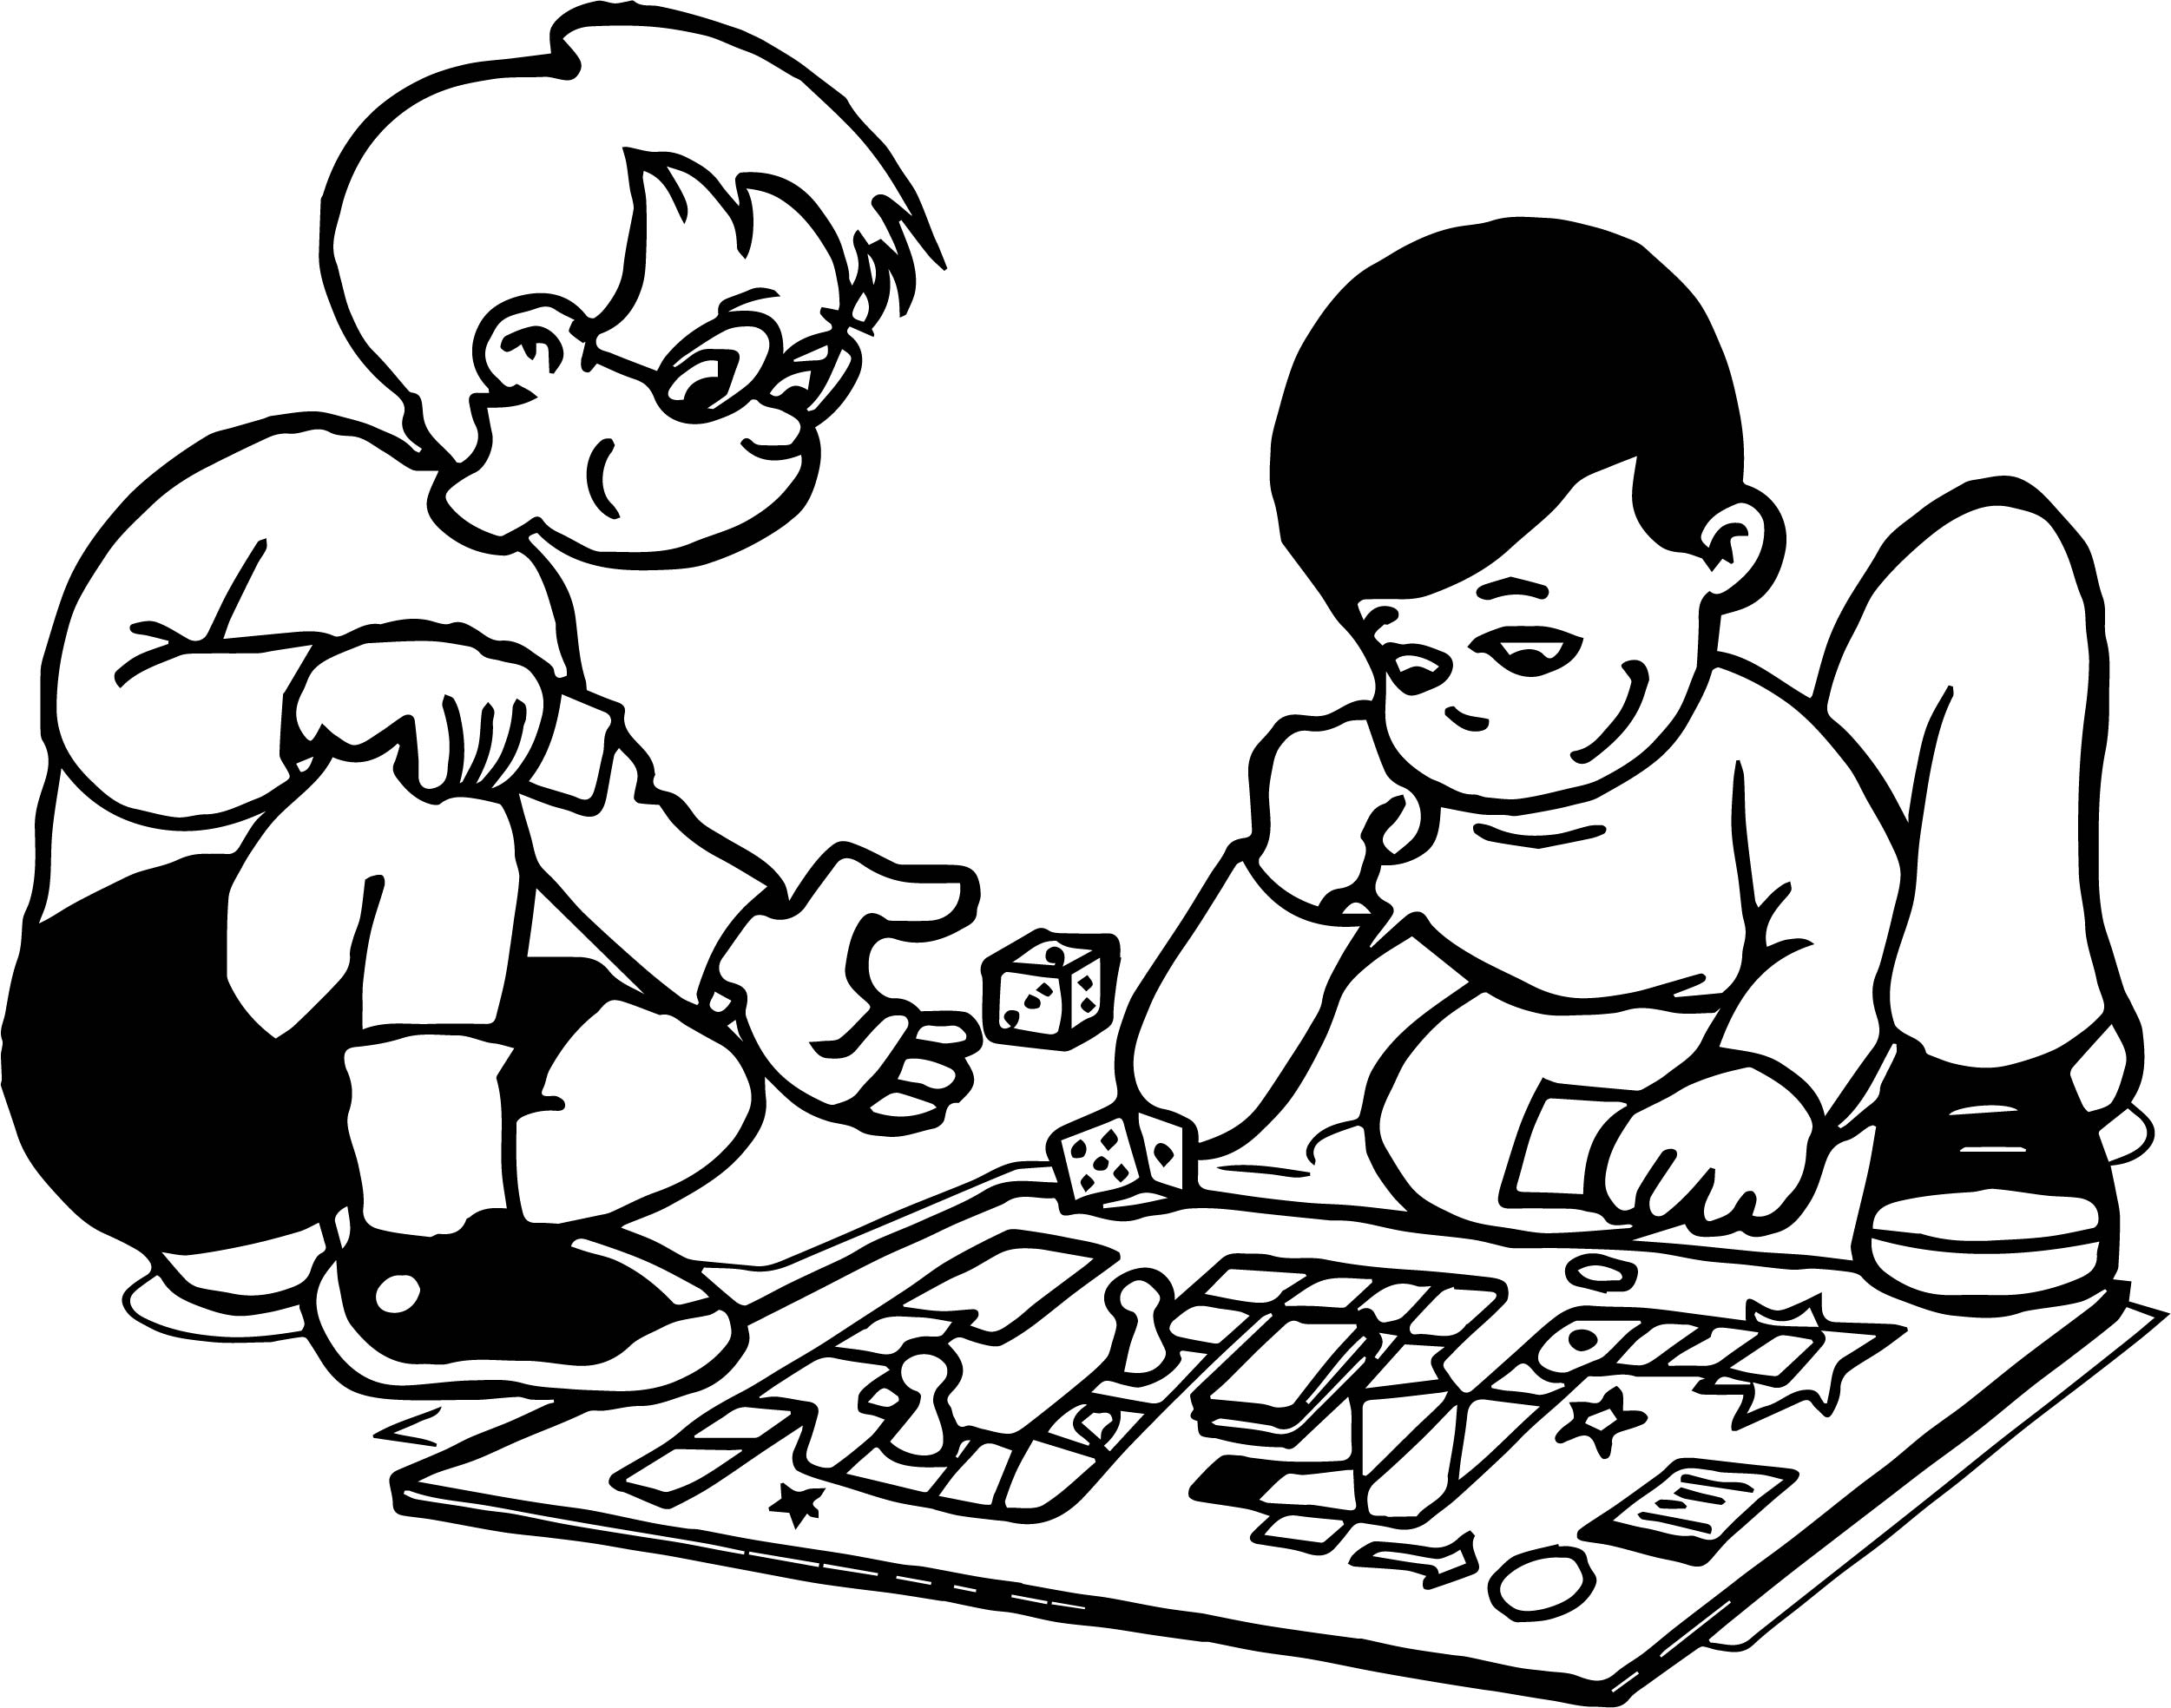 2501x1968 Game Coloring Pages Game Coloring Pages Funny Board Game Coloring